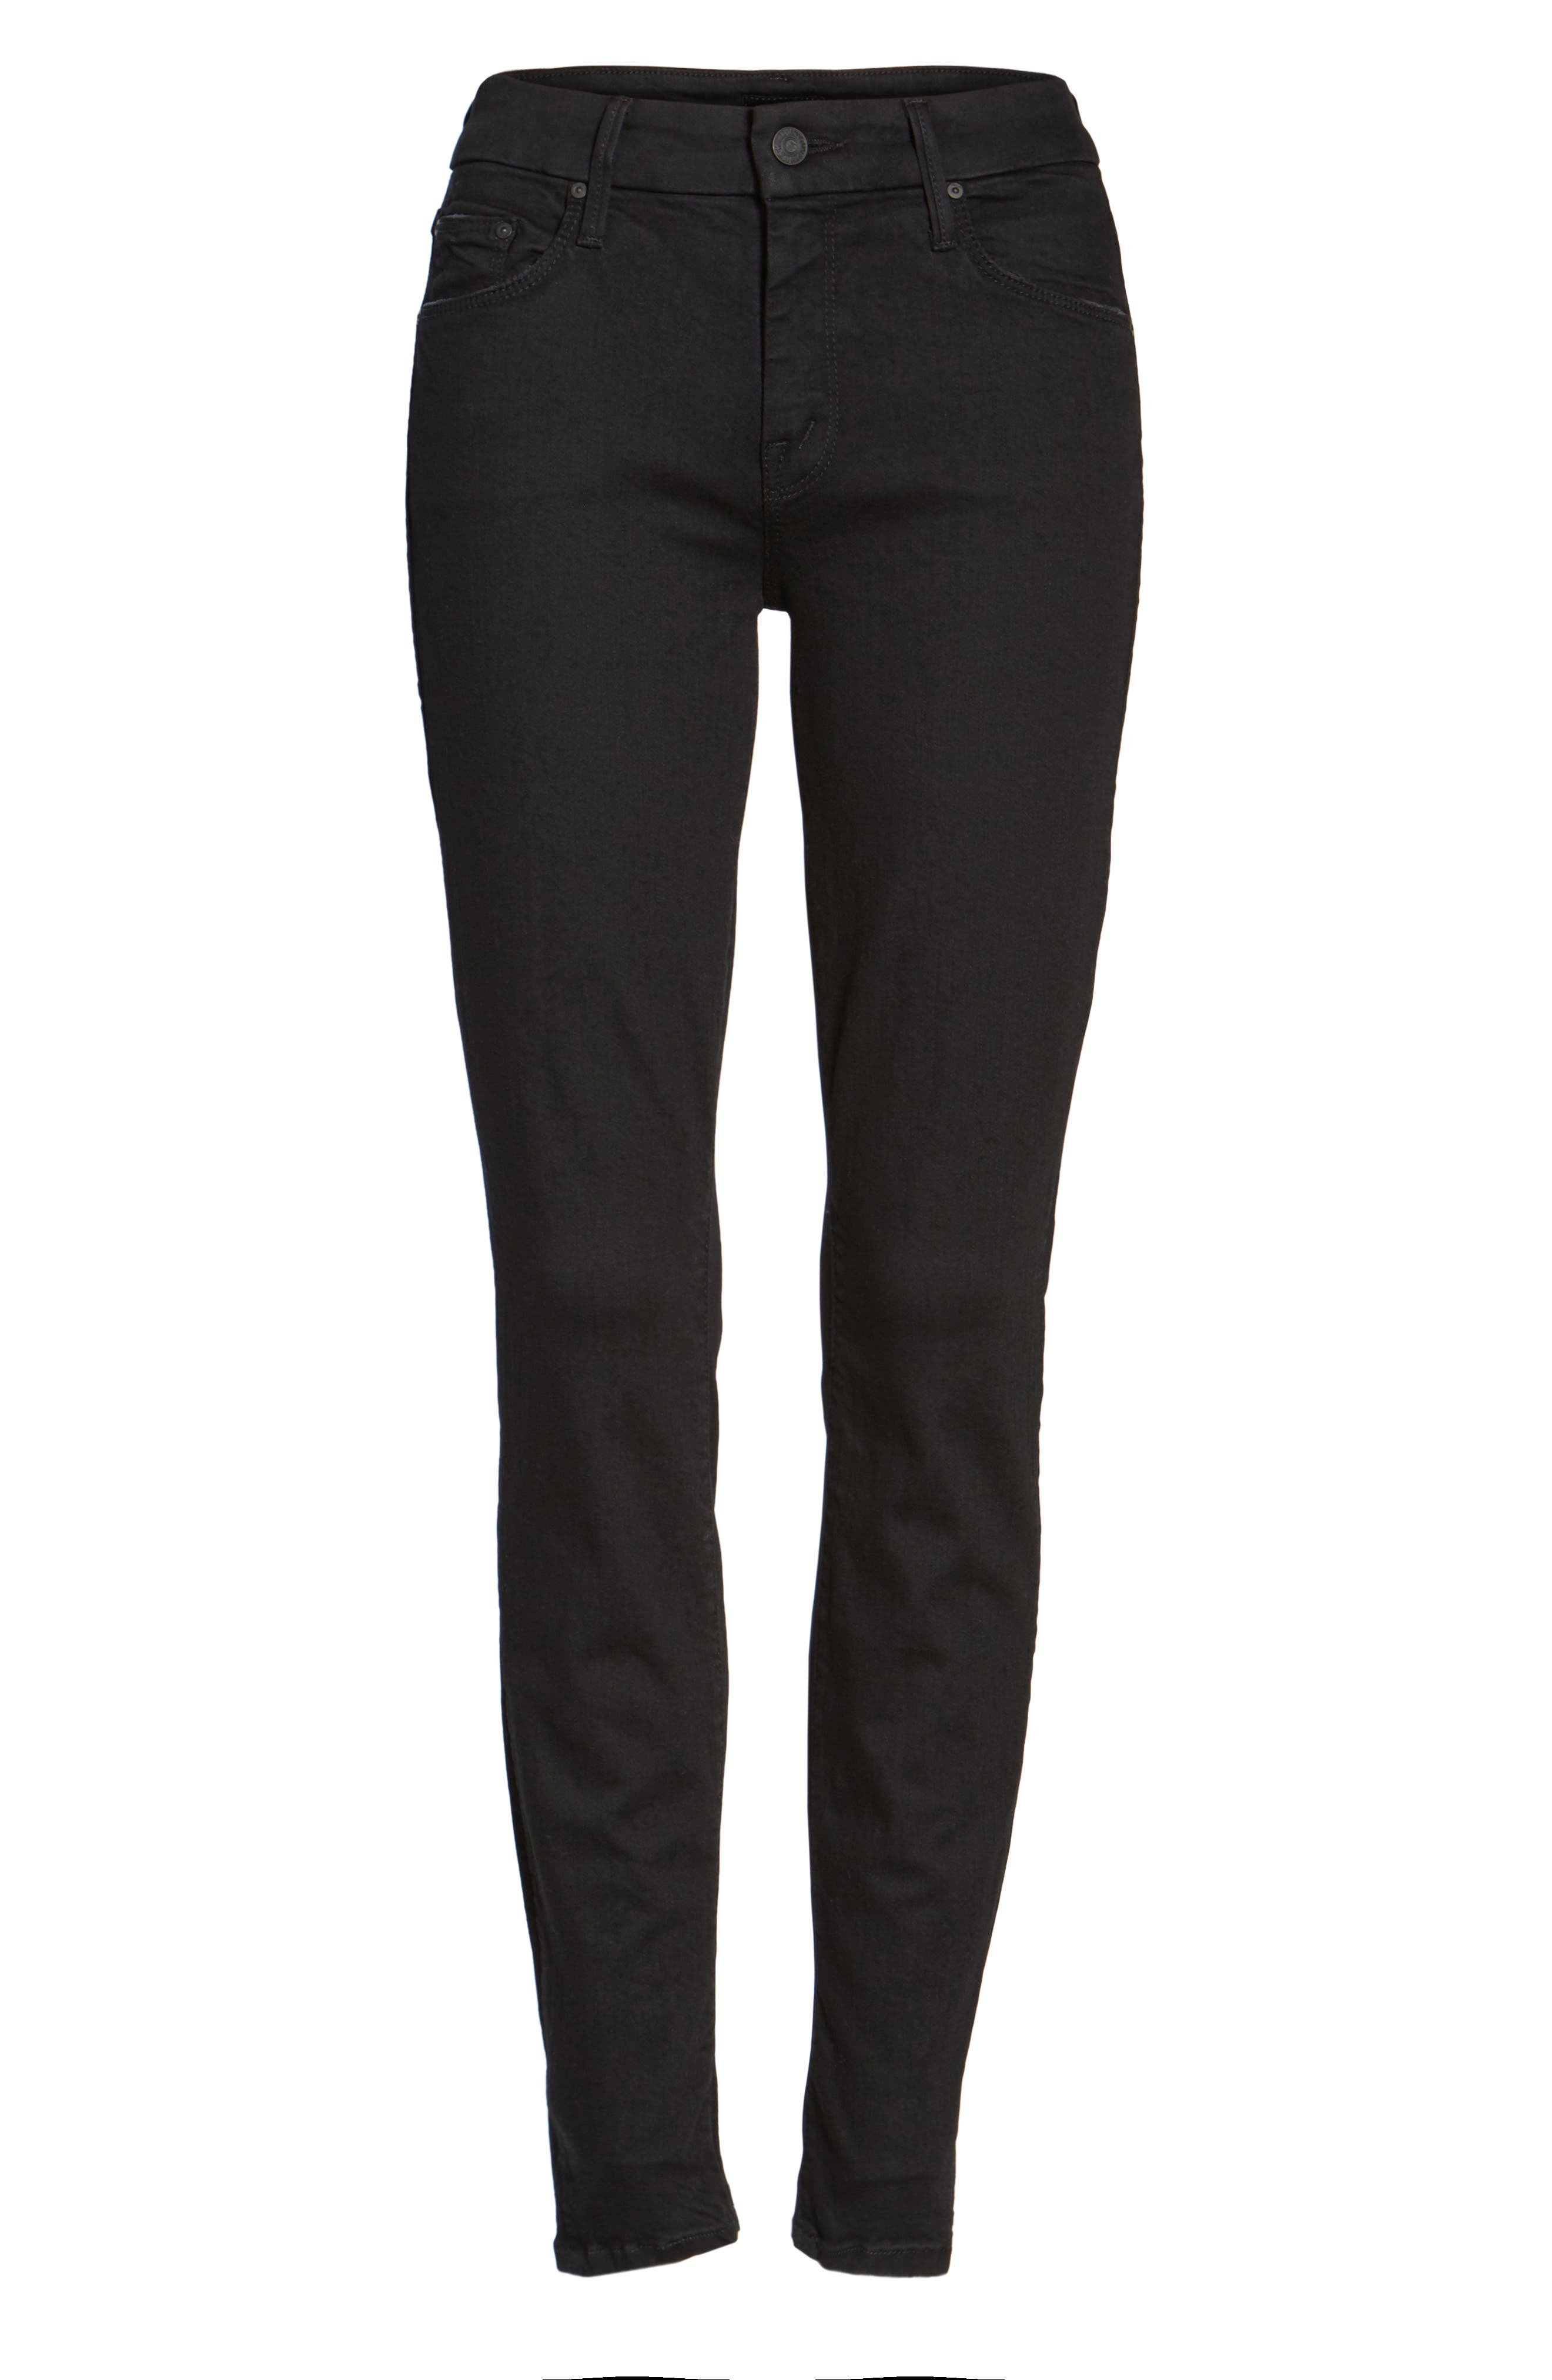 MOTHER, 'The Looker' Mid Rise Skinny Jeans, Alternate thumbnail 7, color, NOT GUILTY